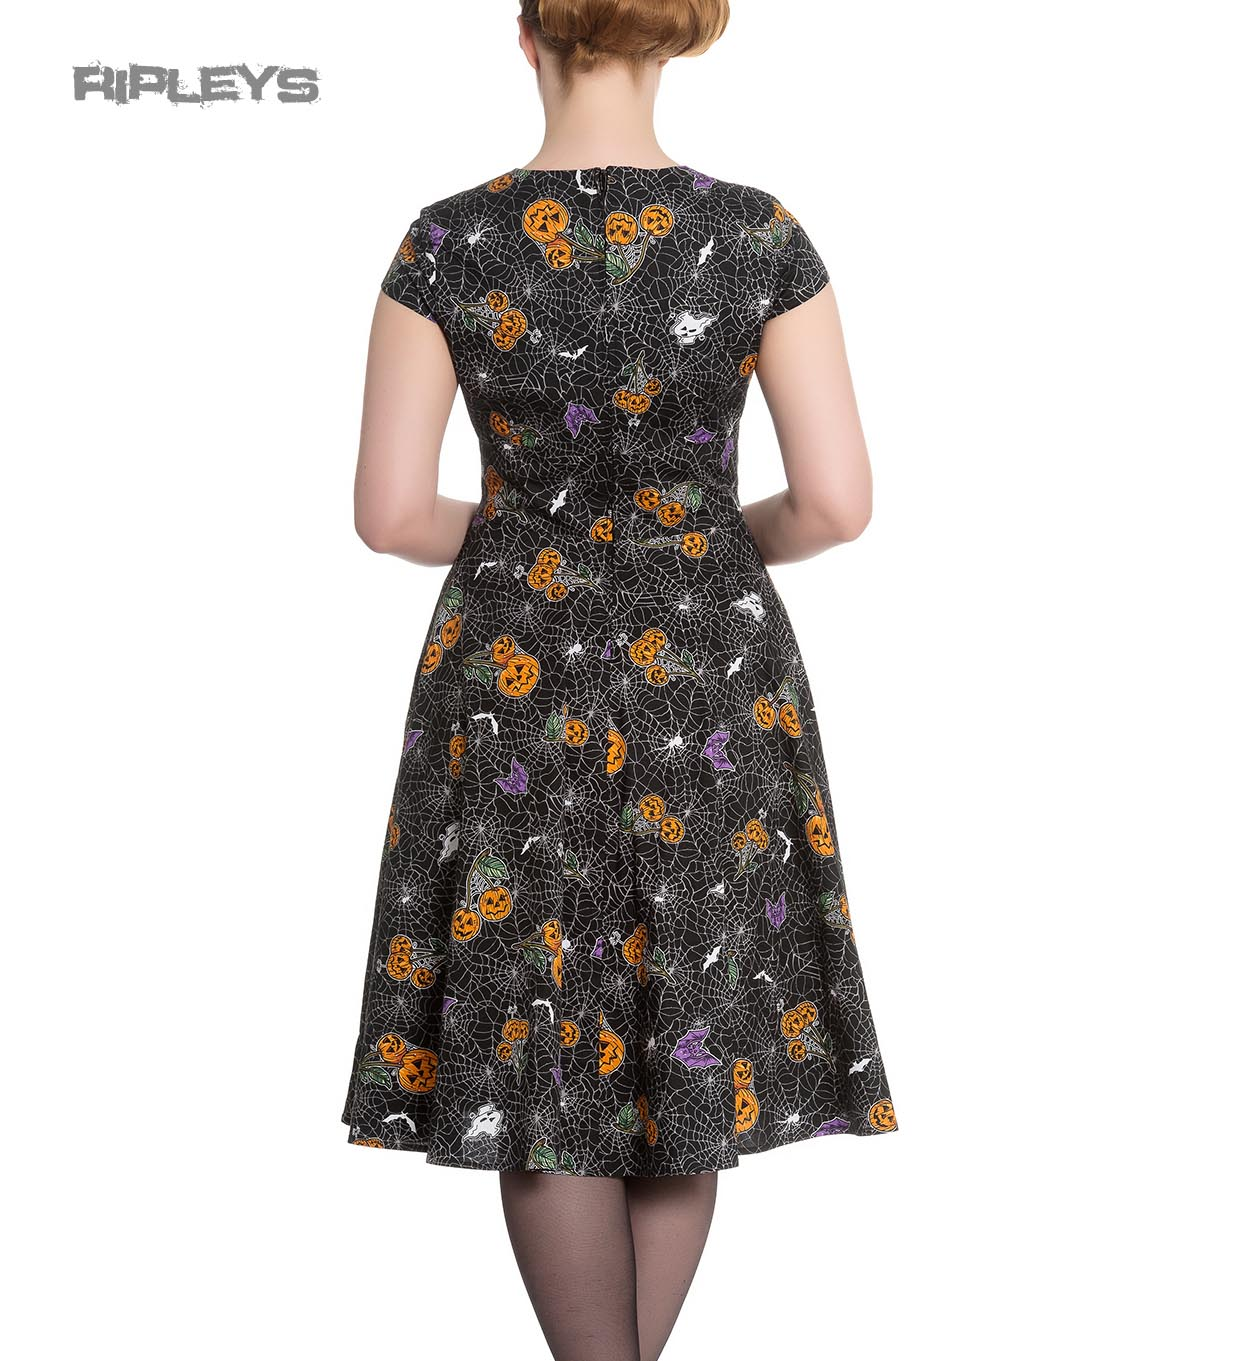 Hell-Bunny-Black-Pinup-50s-Goth-Webs-Dress-HARLOW-Halloween-All-Sizes thumbnail 16